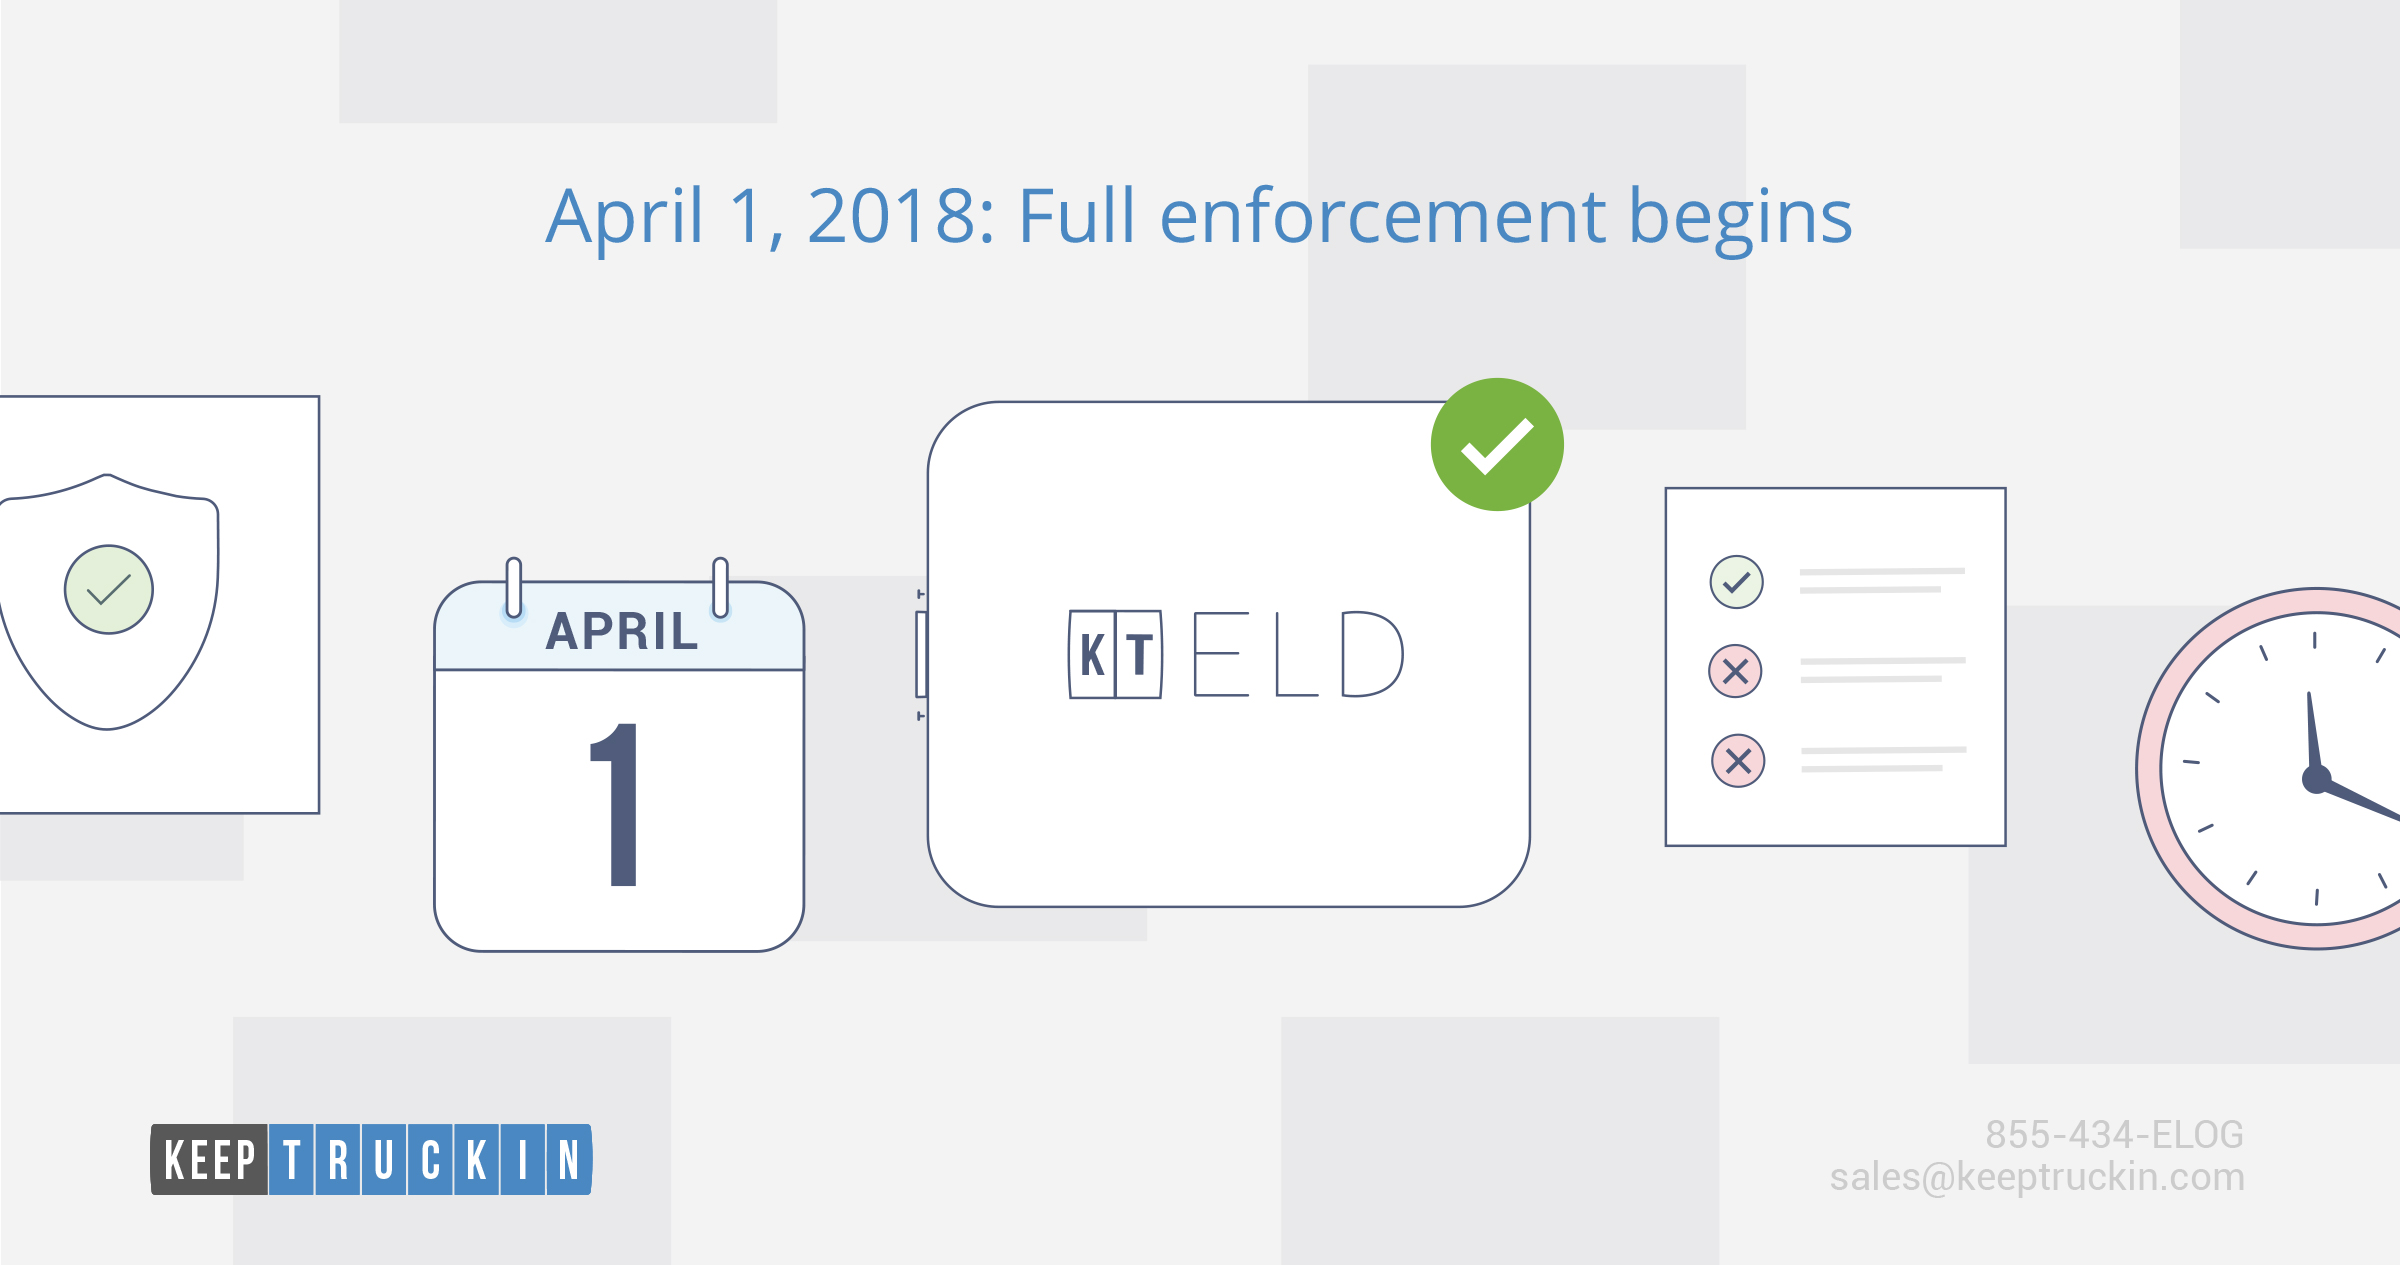 April 1, 2018: Full enforcement begins